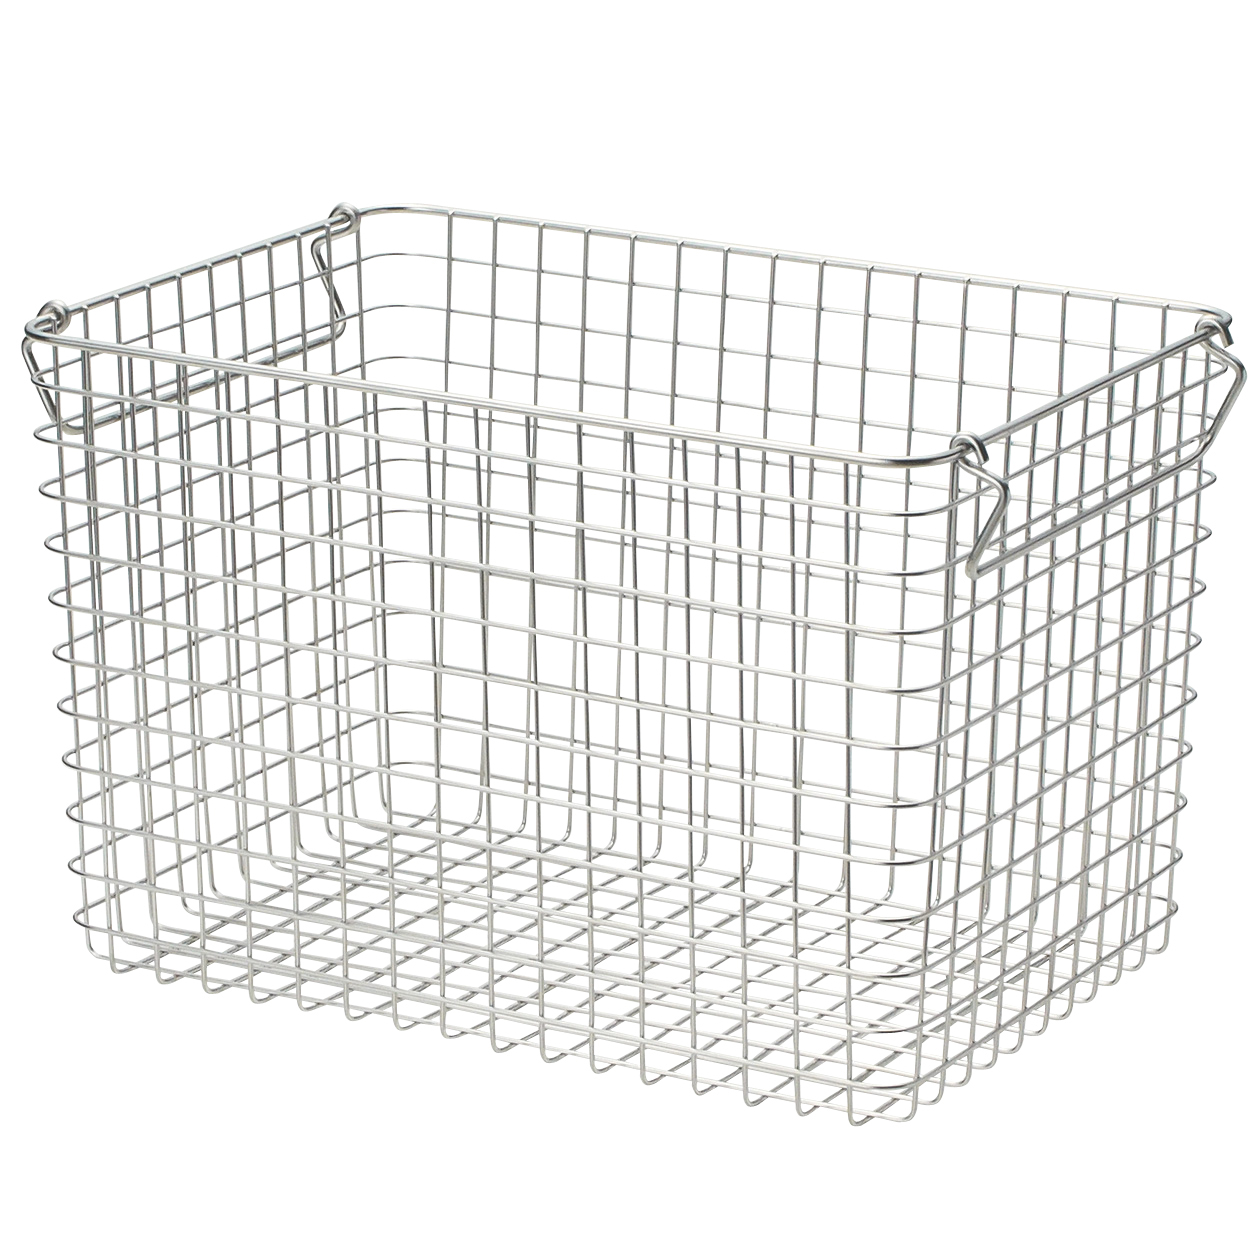 18 8 Stainless Steel Wire Basket 5 W37 D26 H24cm